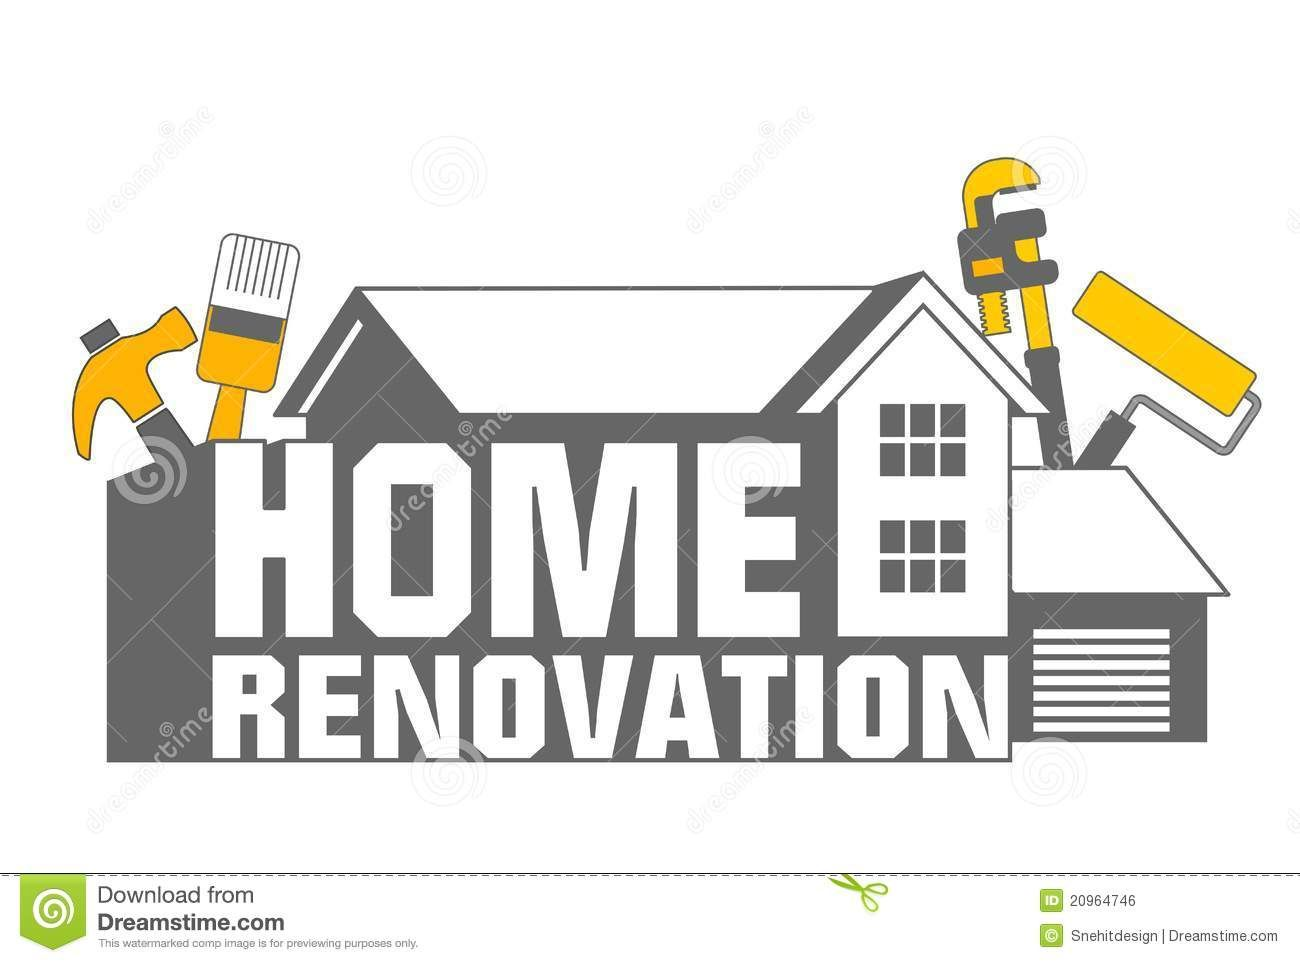 Home Renovation Clip Art I really want this.   Monarch Floor and ...